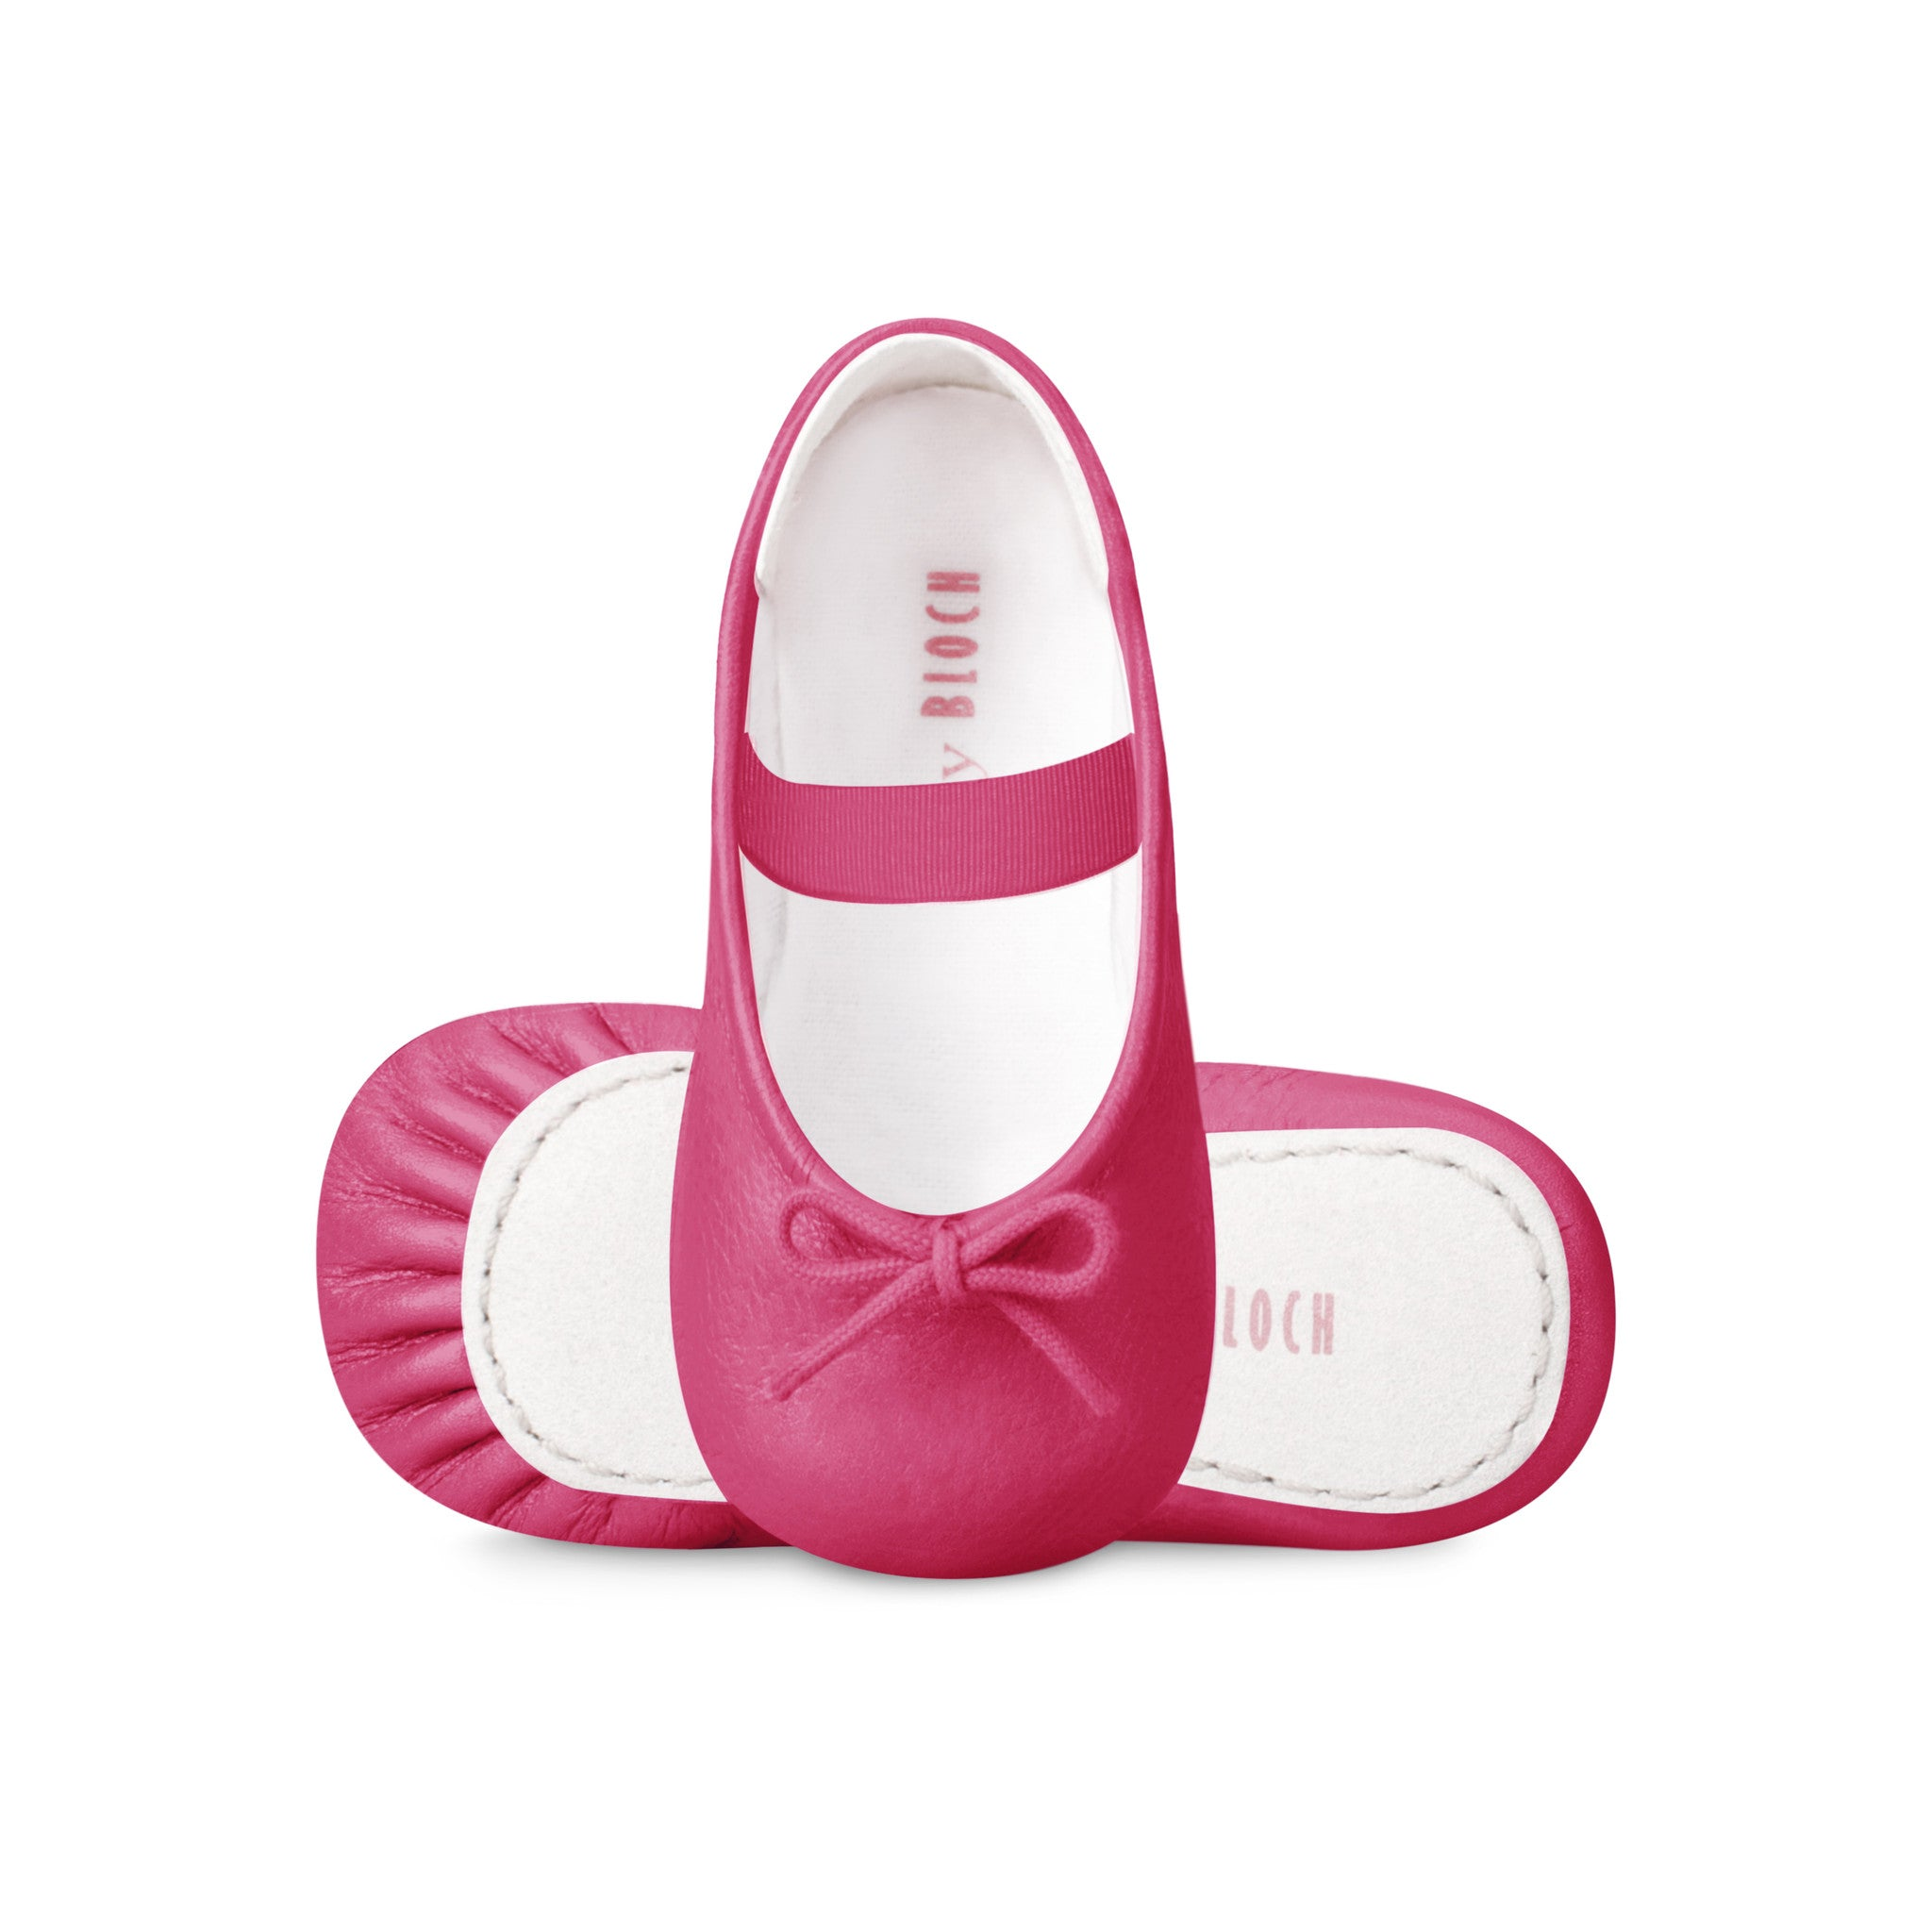 Hot pink Ballerina flats by Bloch at Bonjour Baby Baskets